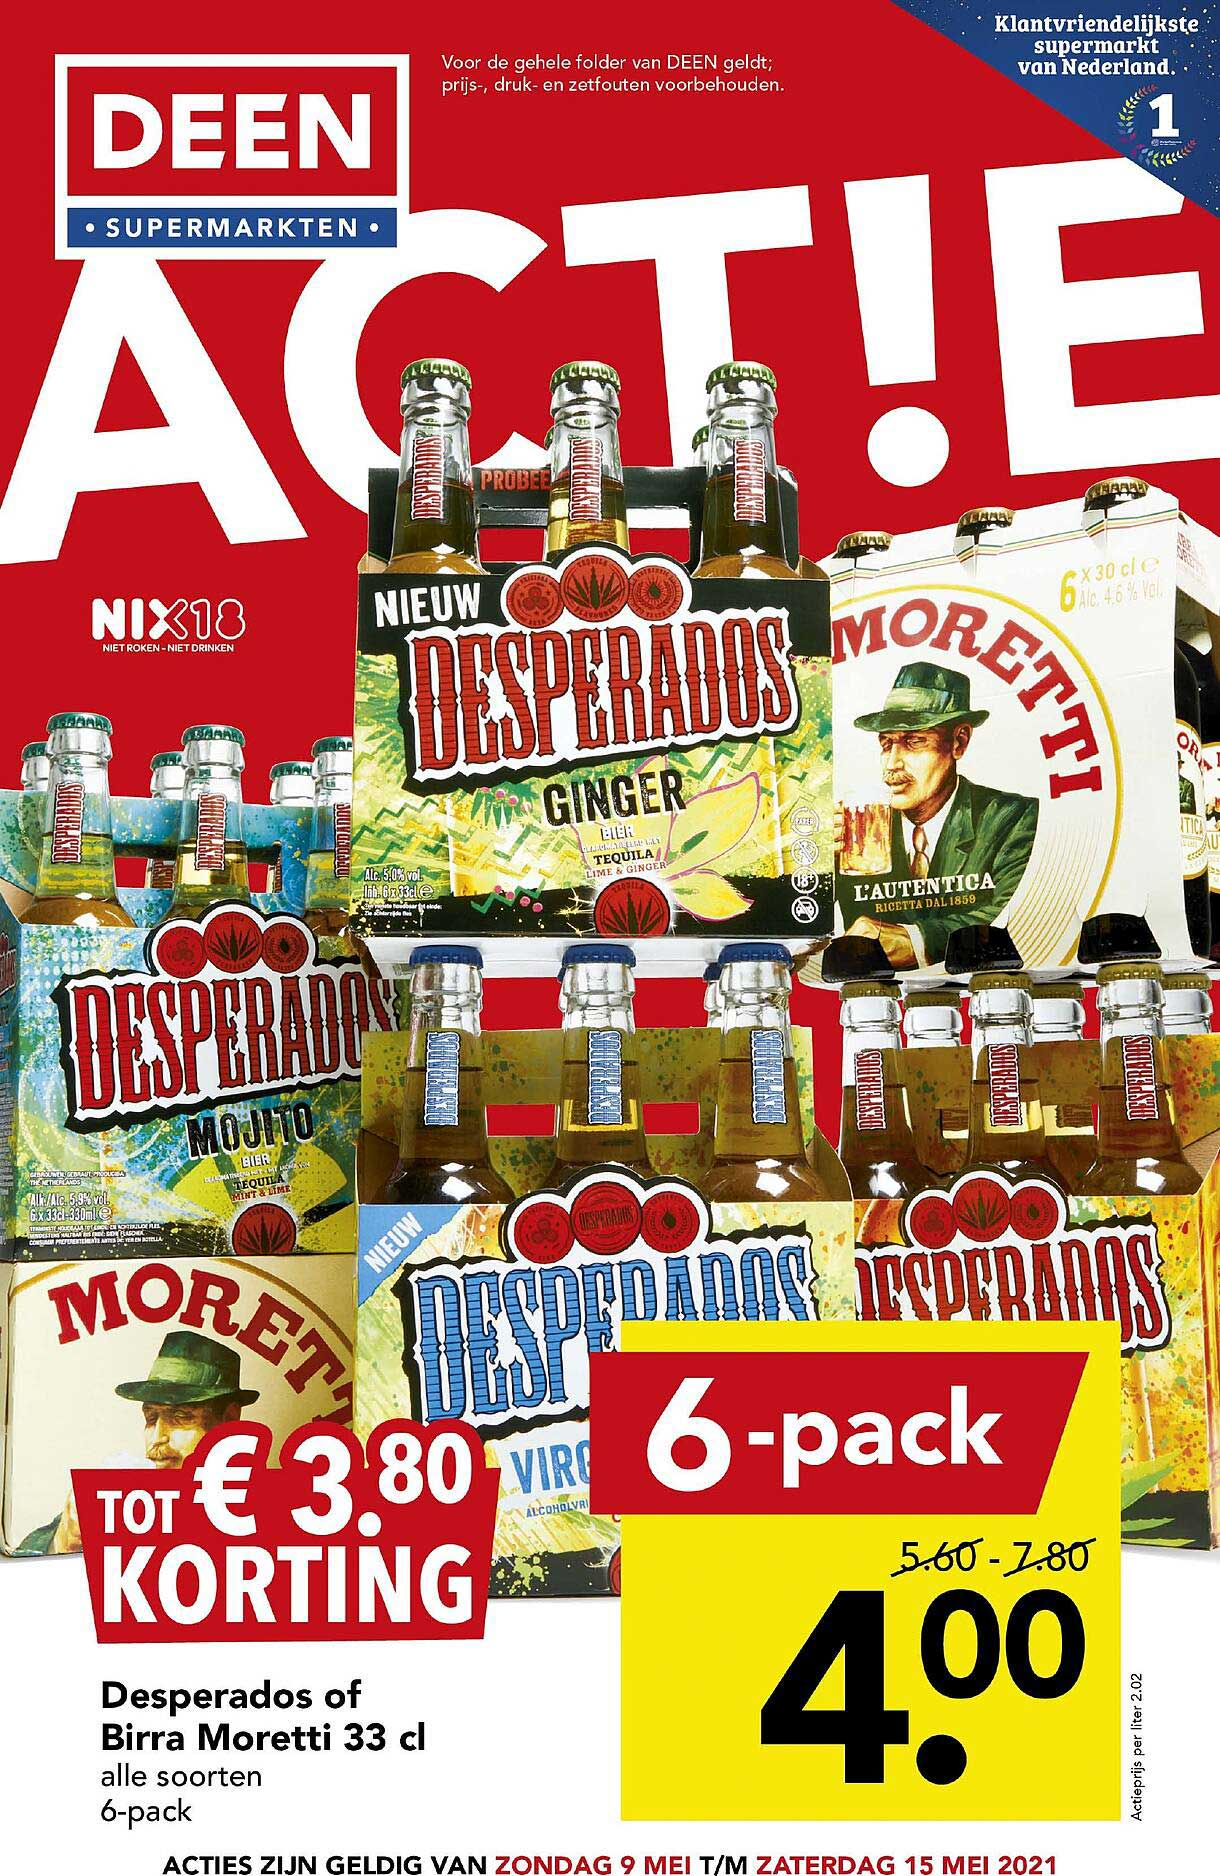 DEEN Desperados Of Birra Moretti 33 Cl Tot € 3.80 Korting